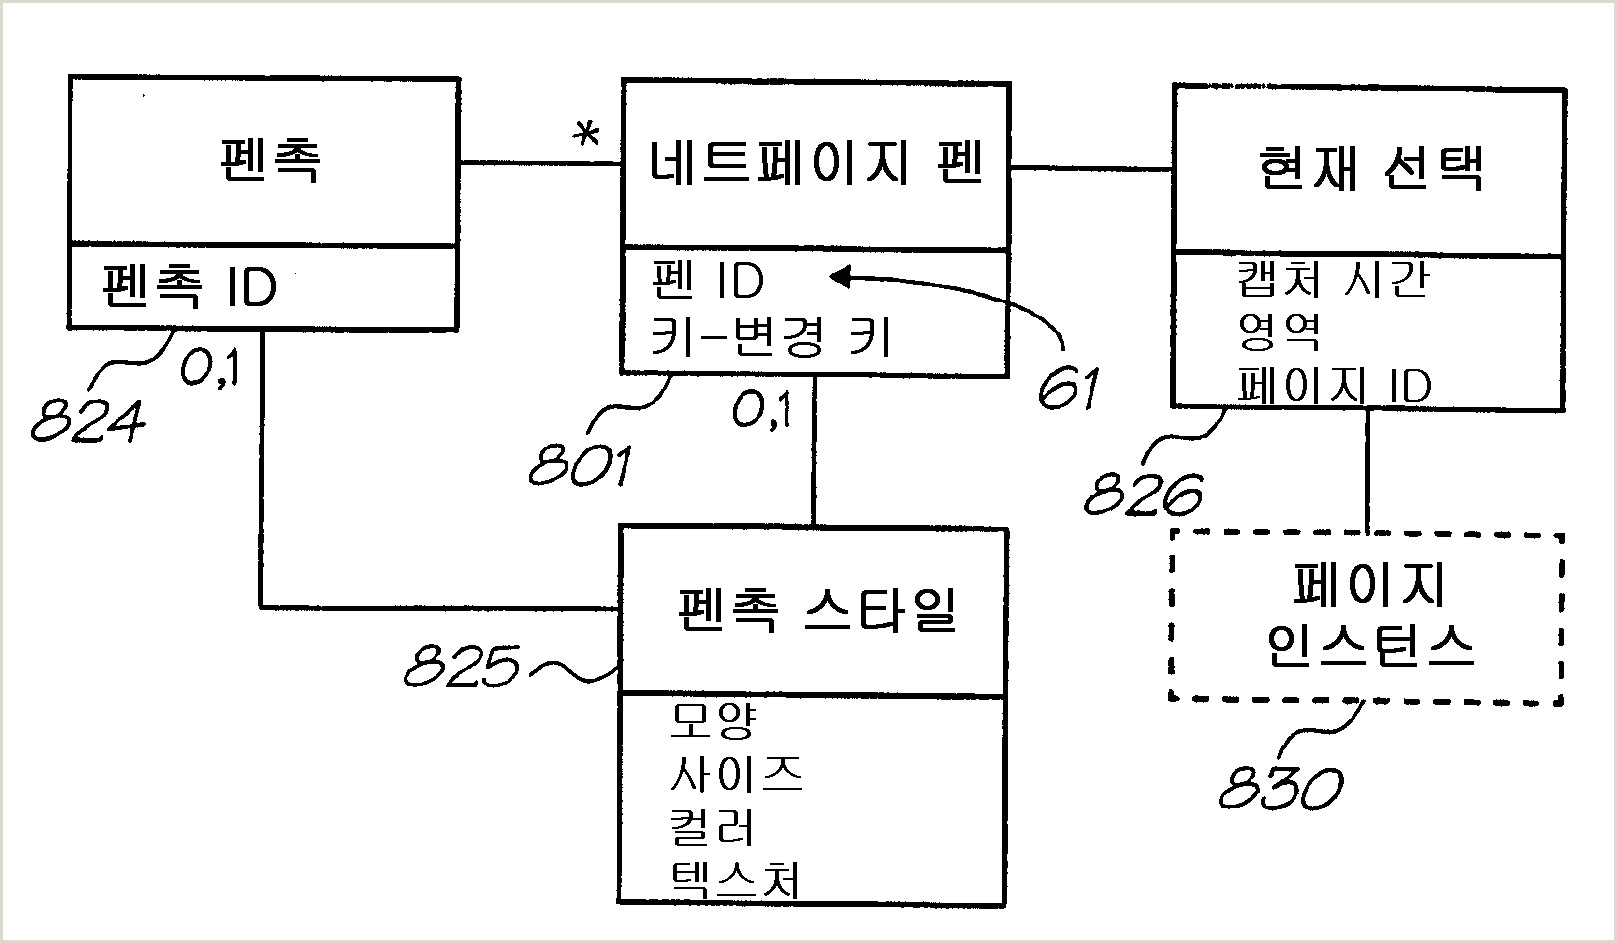 Partner Title On Business Card Kr B1 Puter System Control With User Data Via